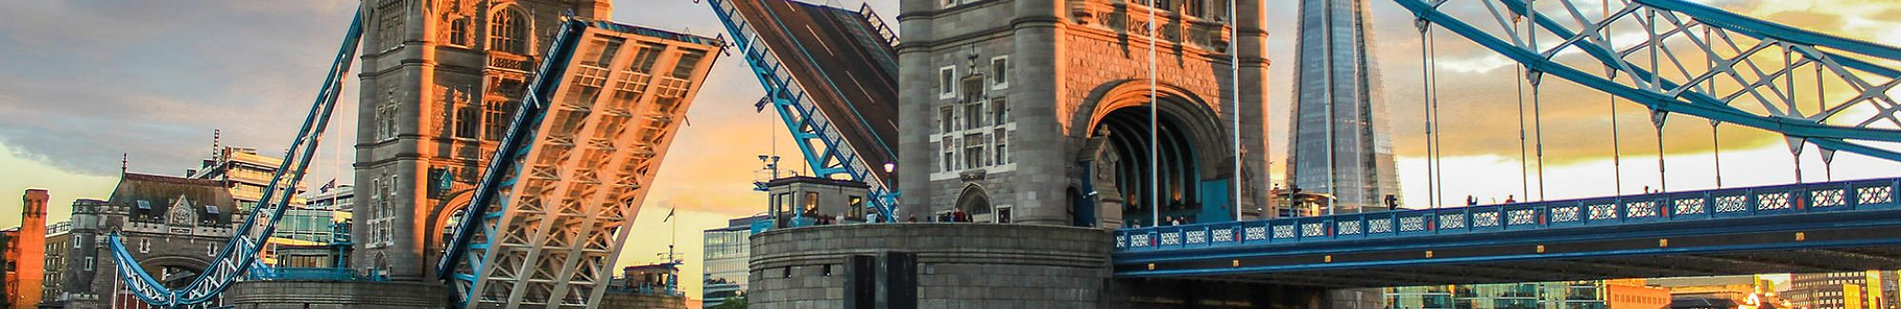 bbt_hero-image_attractions_tower-bridge.